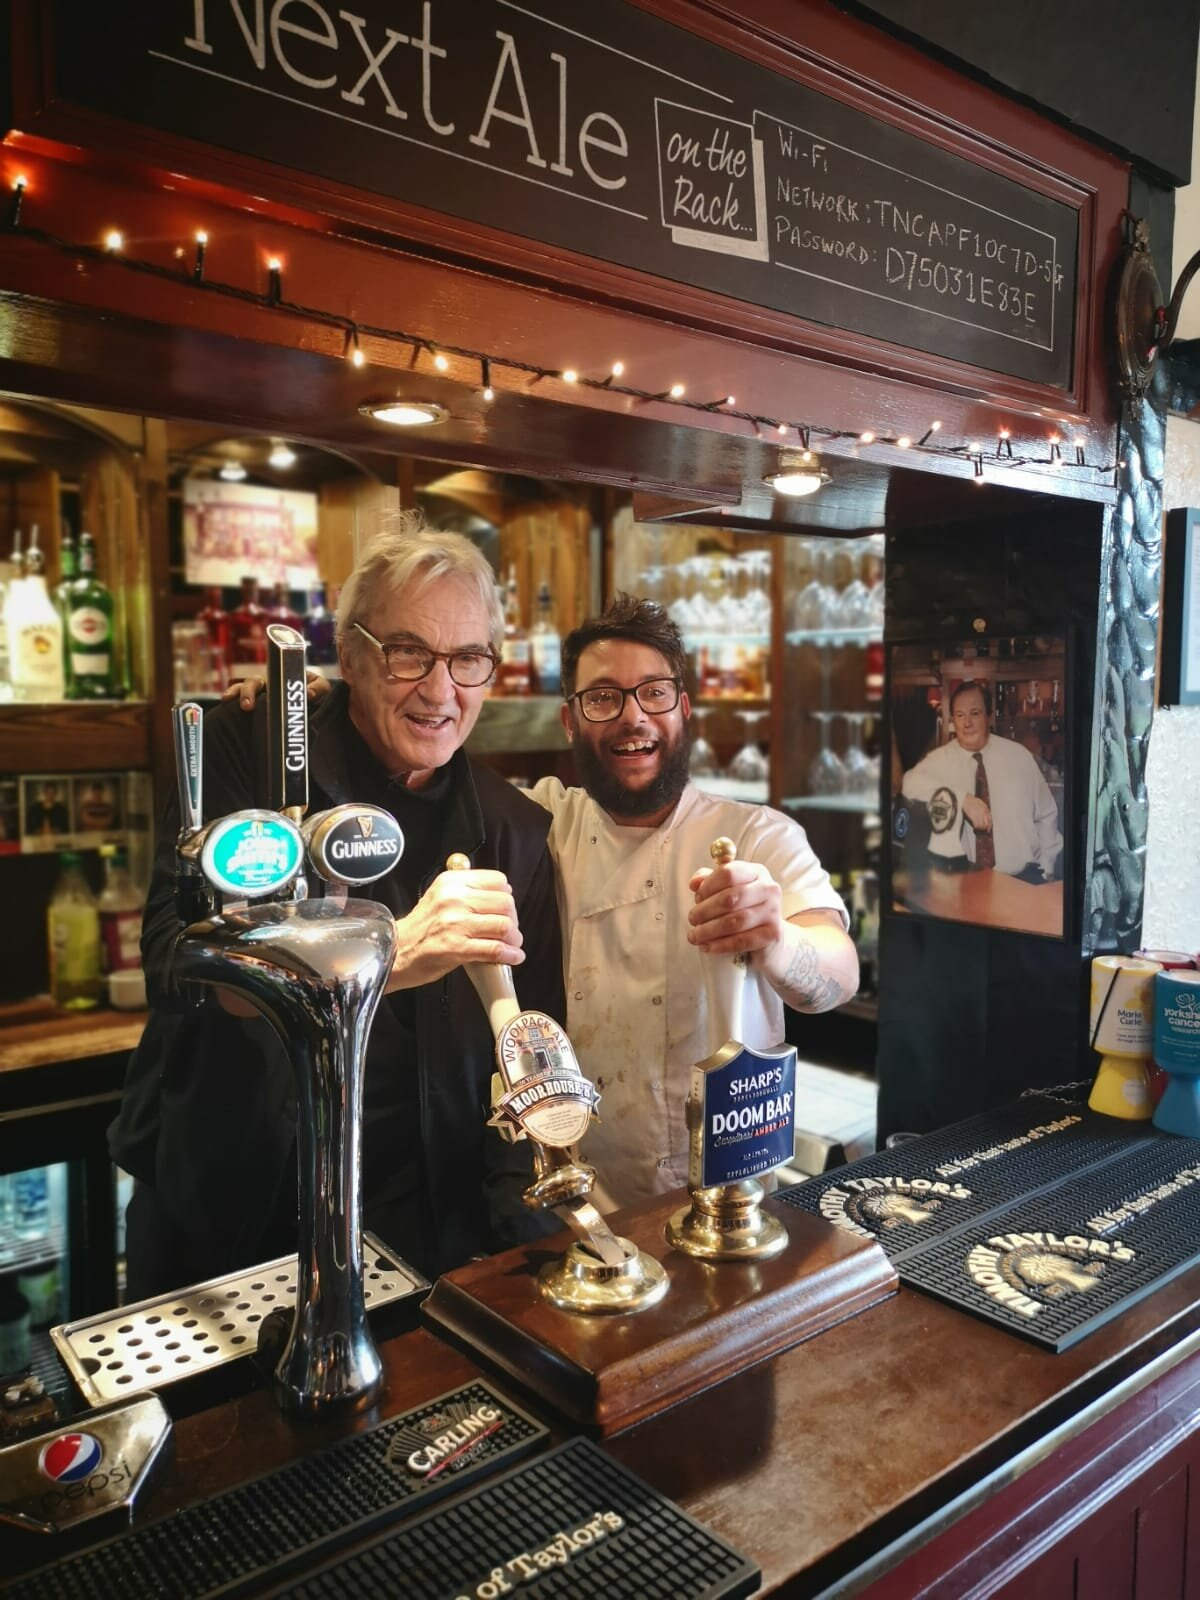 It was great to see Larry Lamb when he popped into the Woolpack for lunch with regular Duncan Preston, who plays Doug in Emmerdale. He is a charming guy and the customers were absolutely delighted to have their picture taken with him.